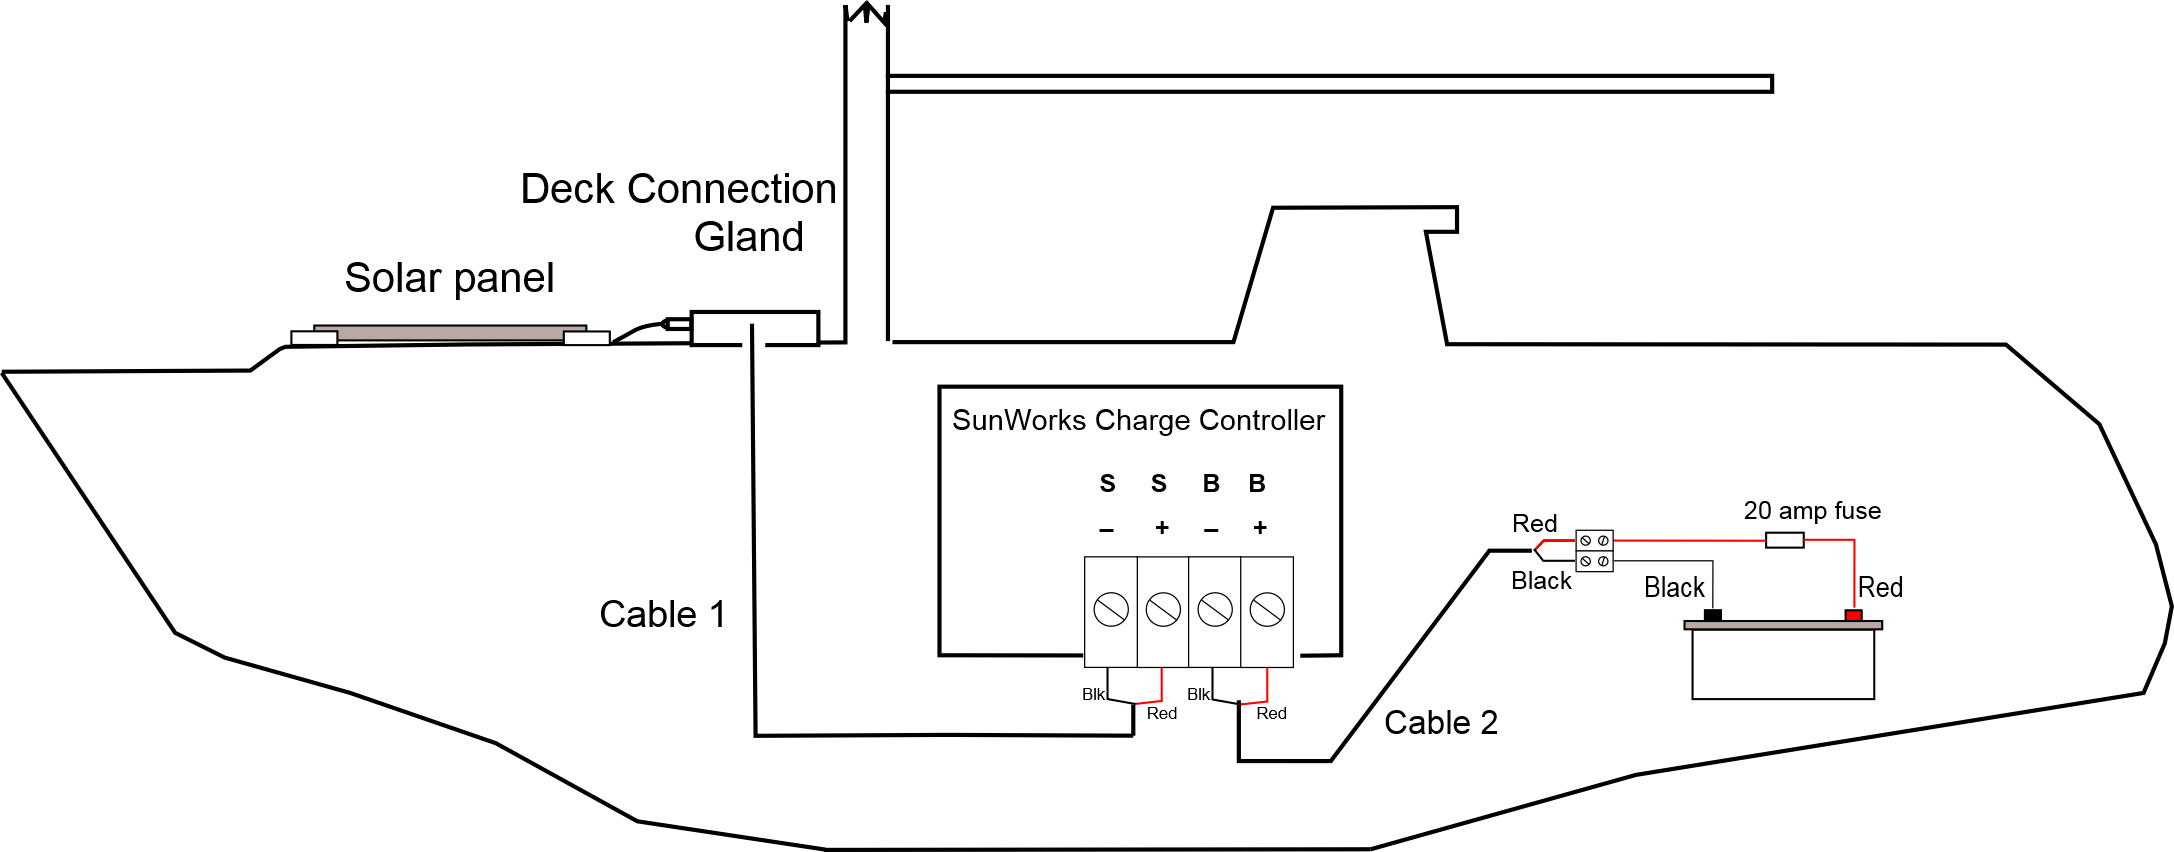 Wiring for single battery_boat 1 rv solar panel wiring diagram & typical diagram for a small rv or caravan solar system wiring diagram at crackthecode.co